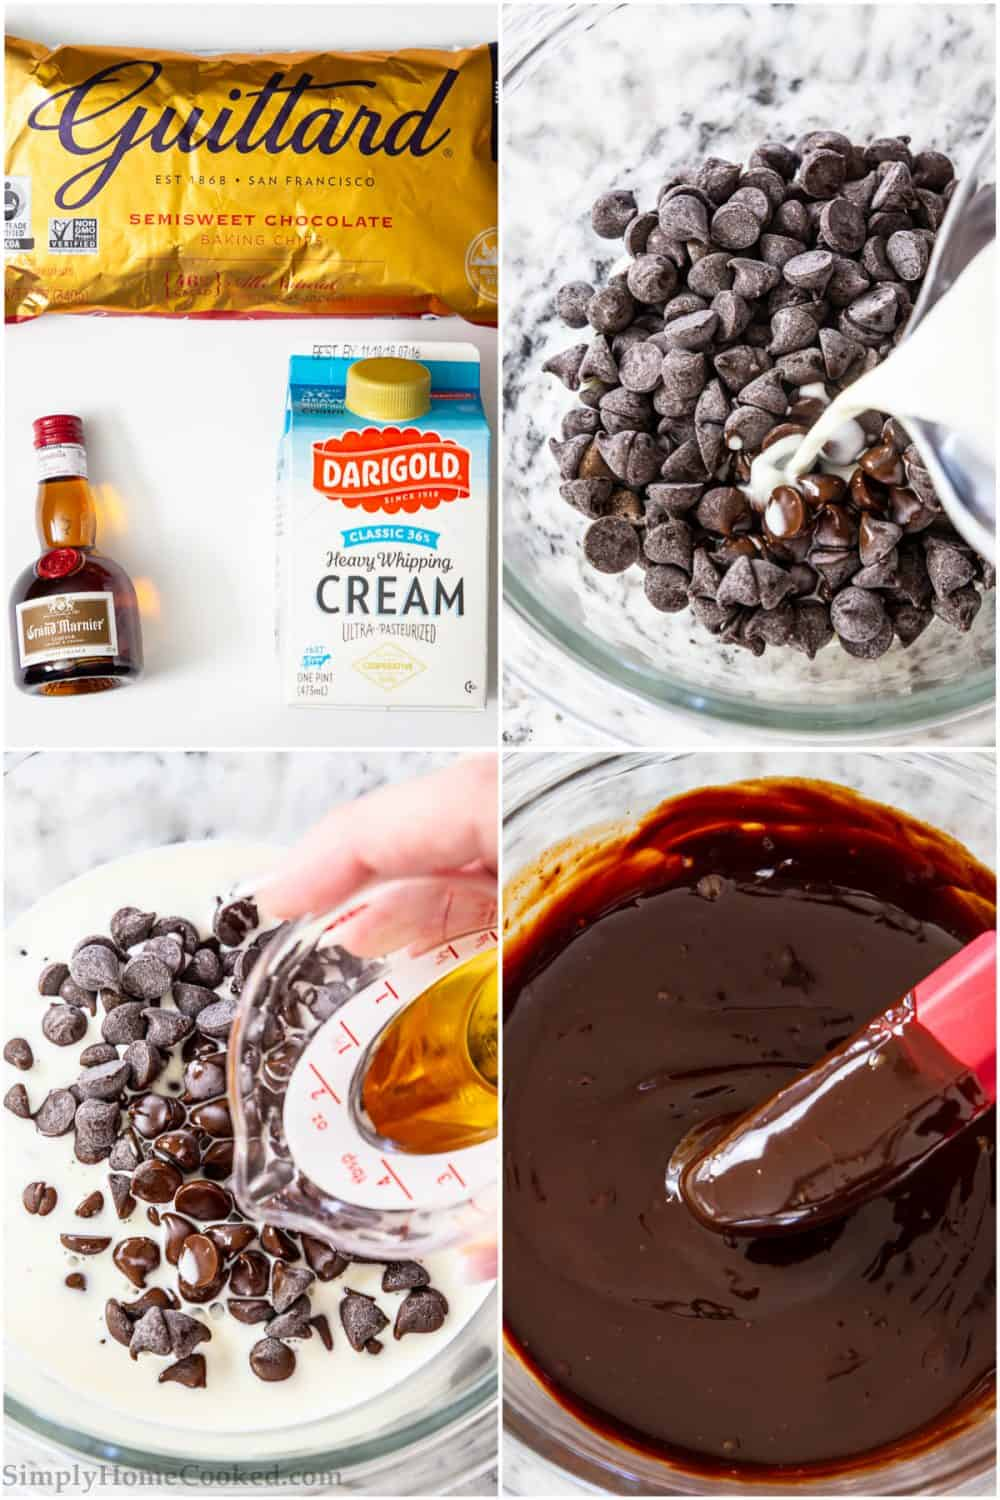 ingredients for chocolate ganache, chocolate chips and heavy cream in a bowl, melted